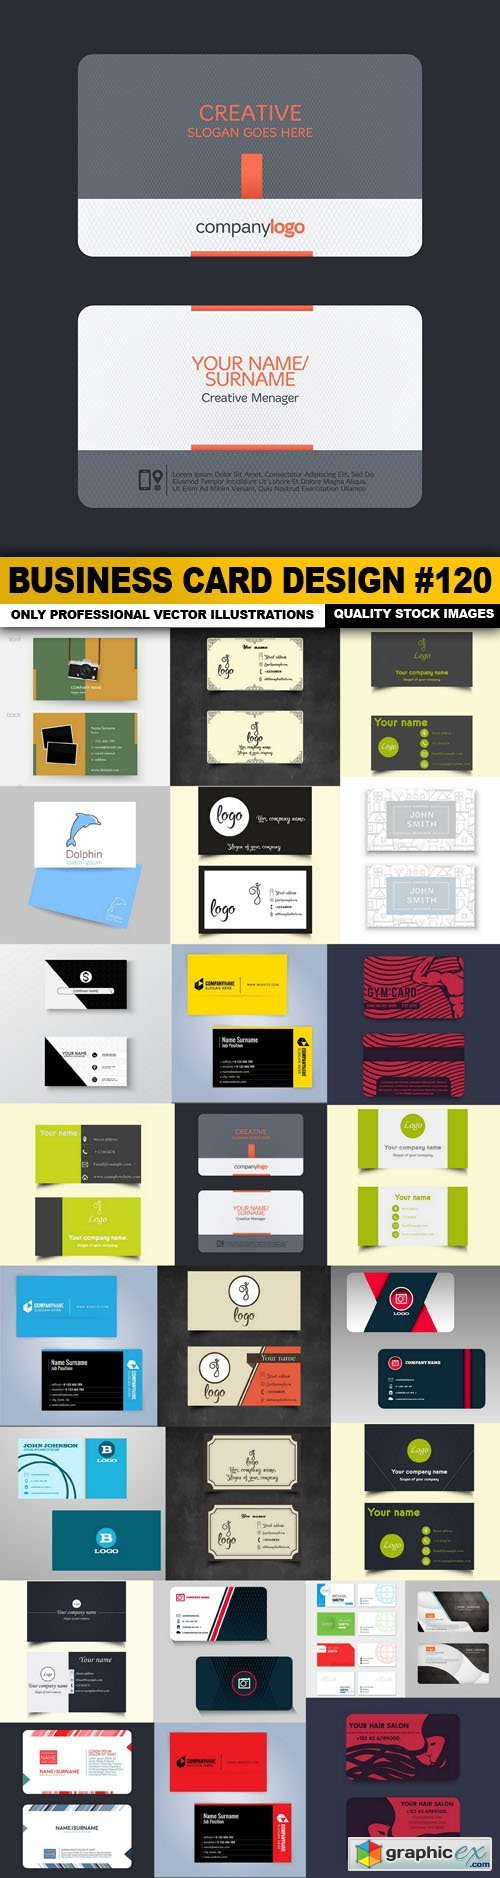 Business Card Design #120 - 25 Vector